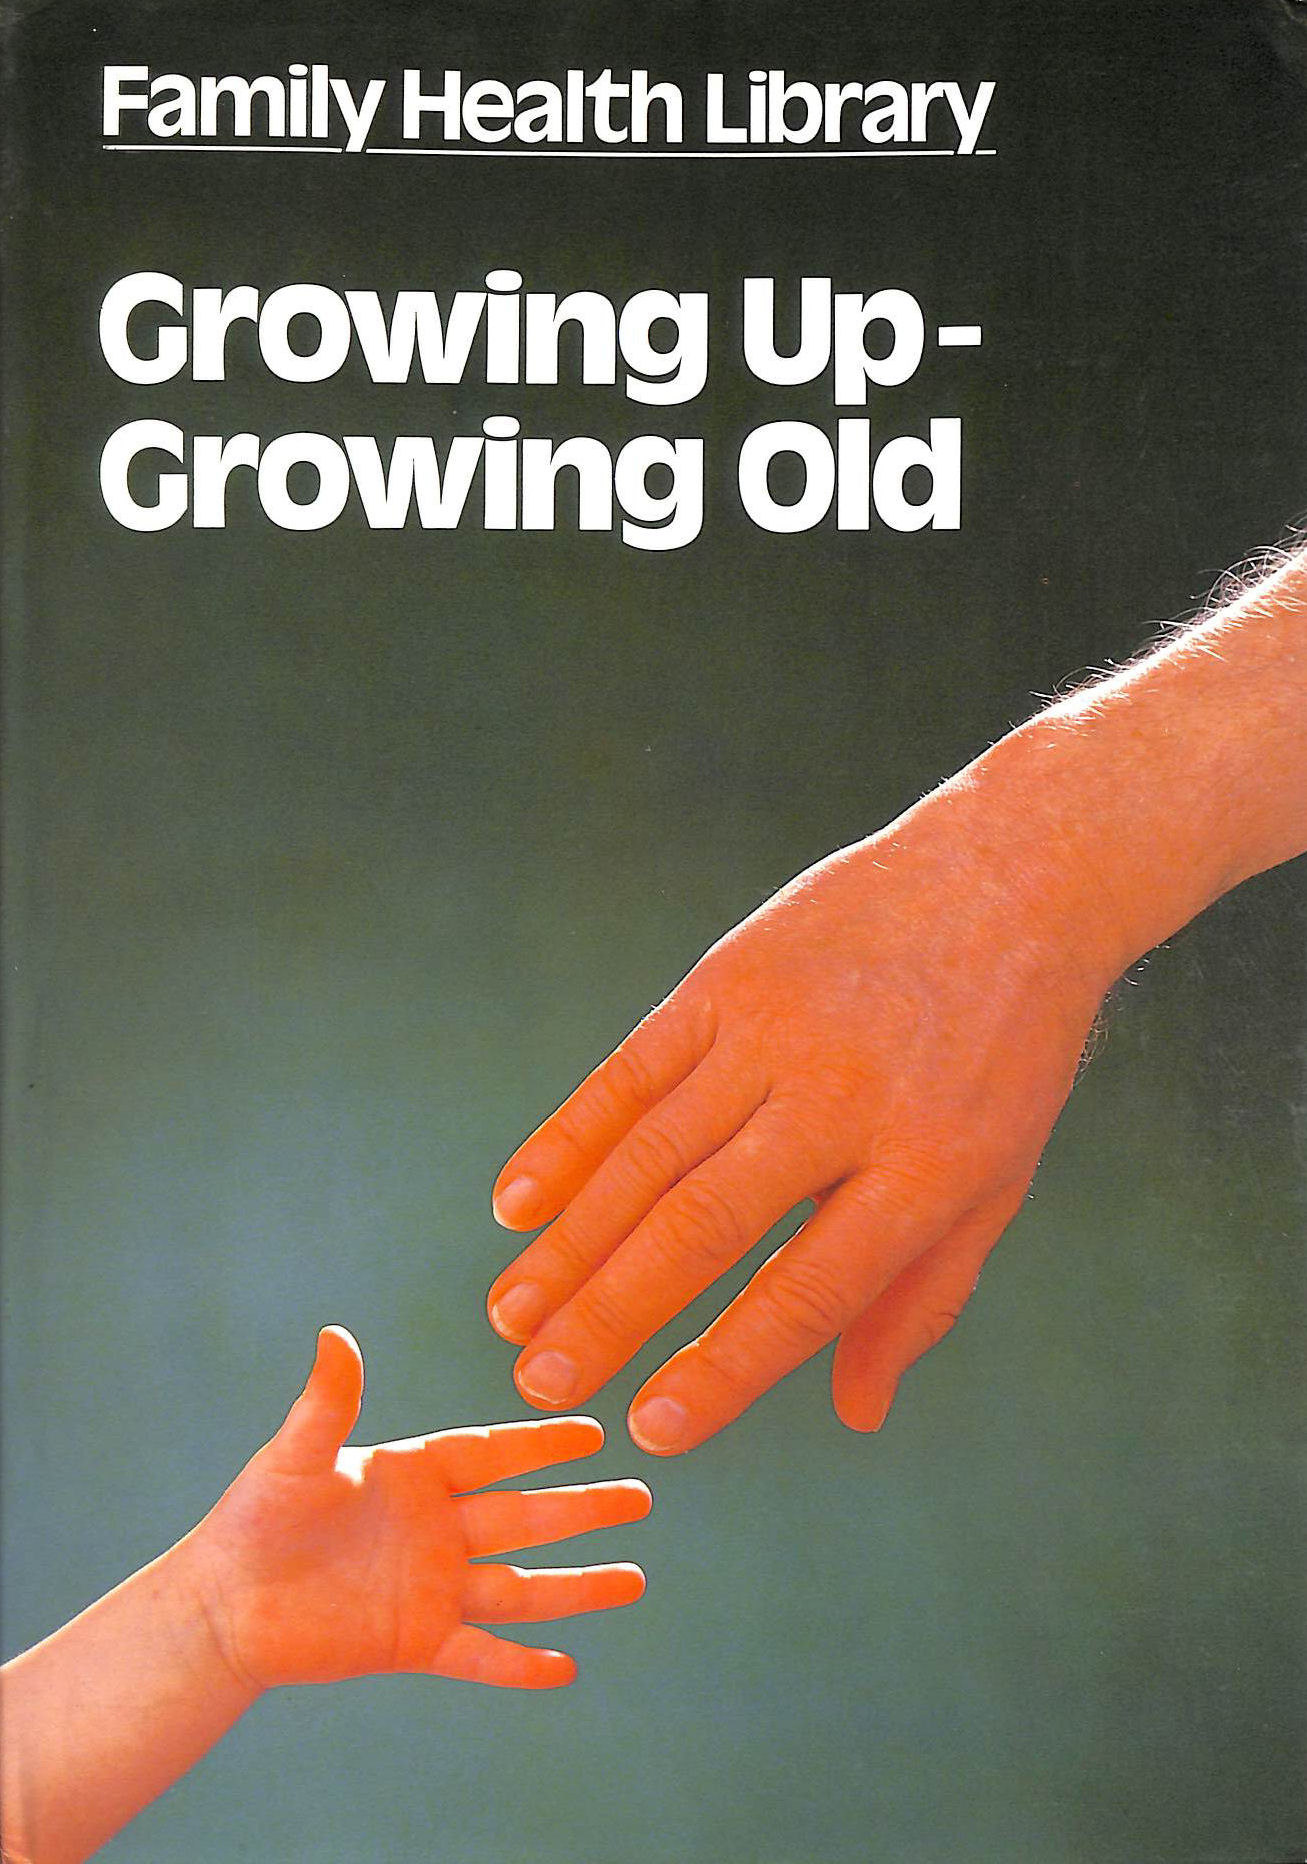 Image for Family Health Library: Growing Up - Growing Old